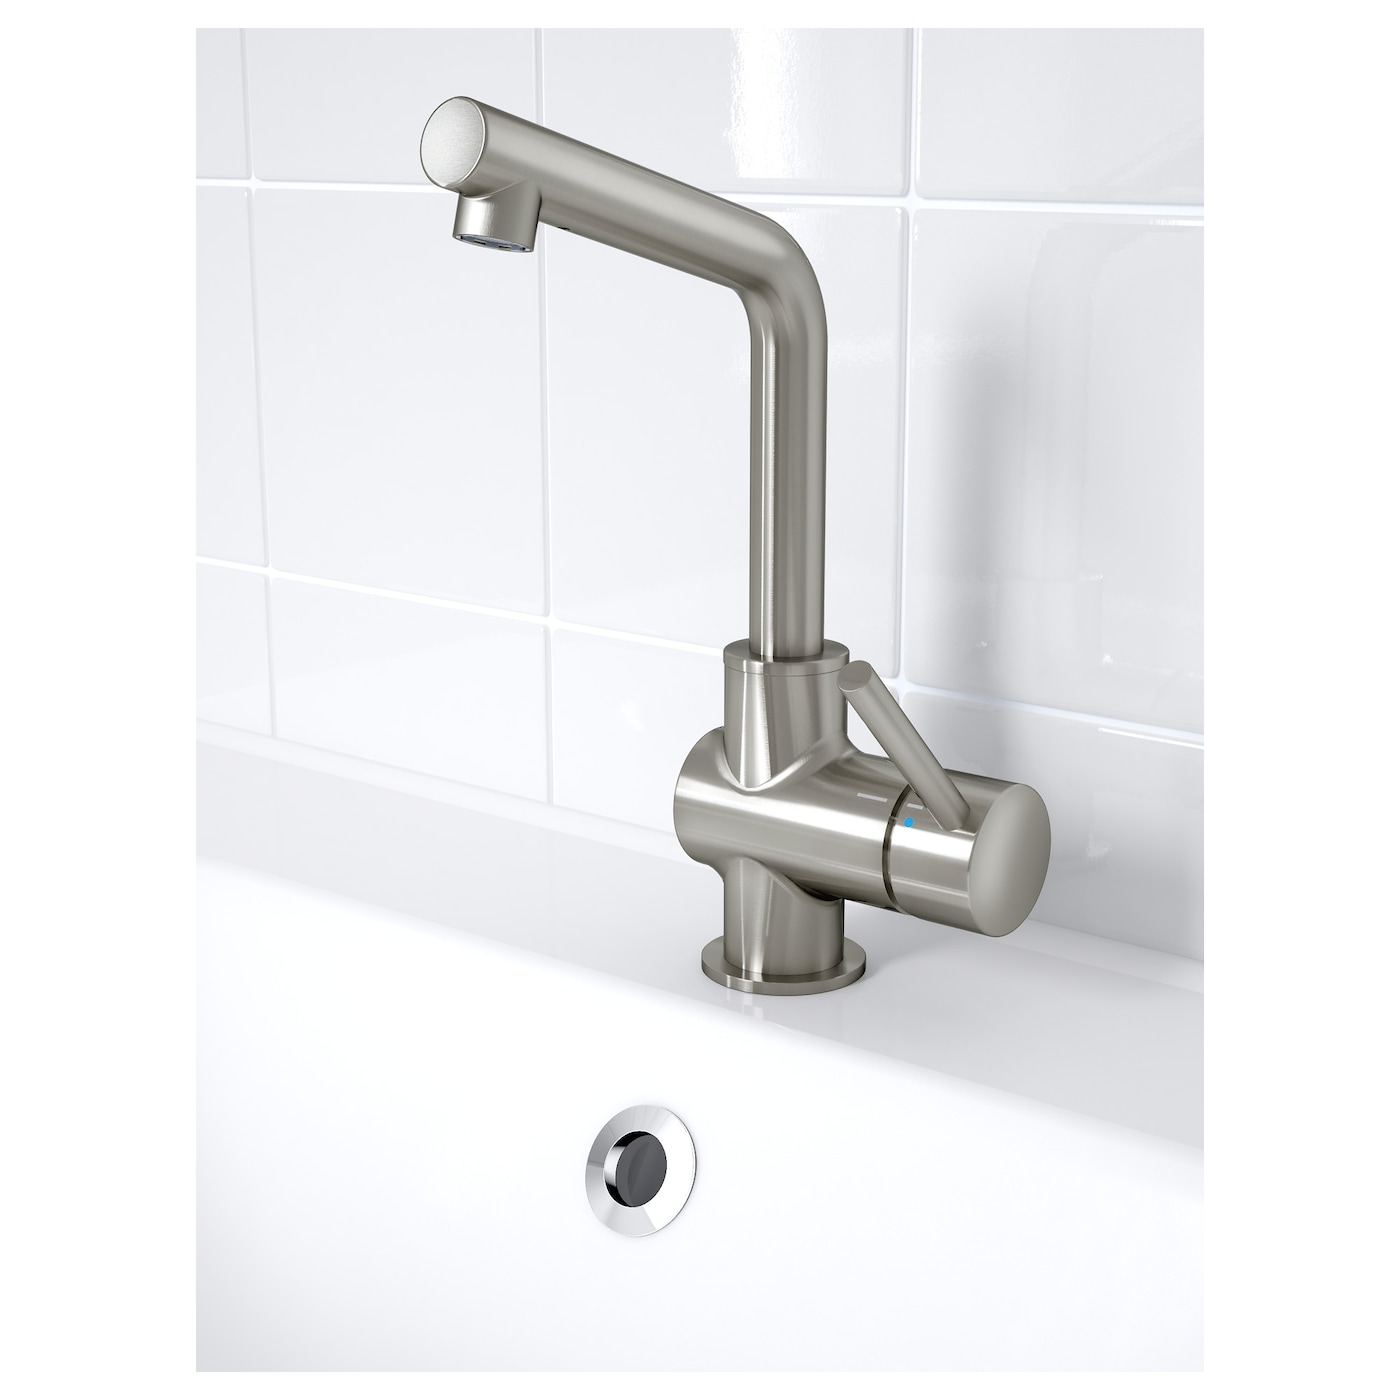 IKEA LUNDSKÄR wash-basin mixer tap with strainer